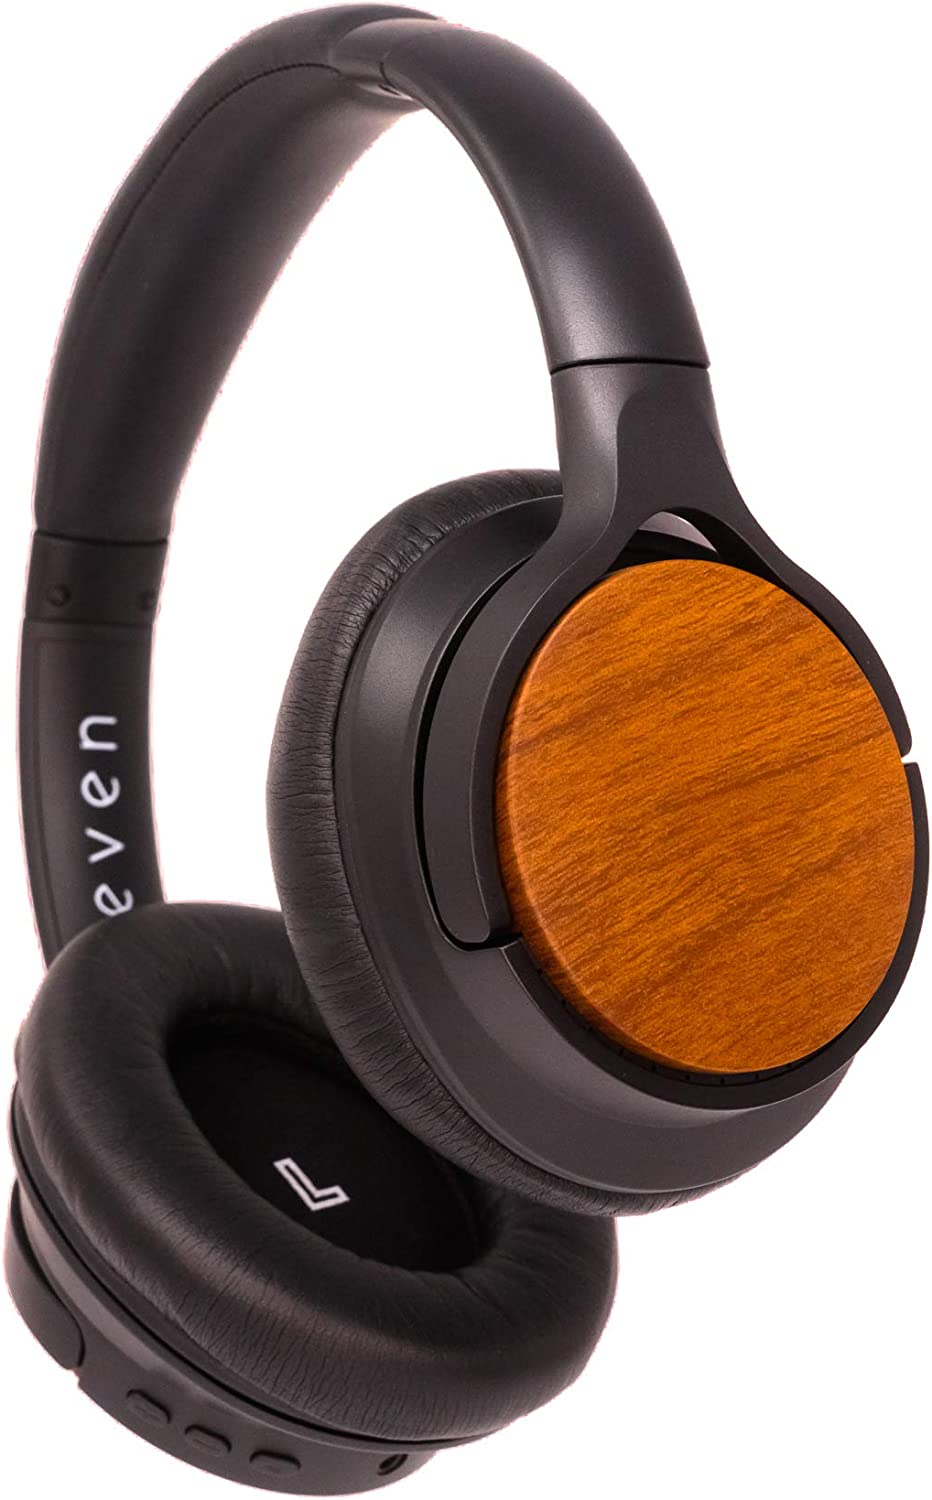 EVEN H4 Over Ear Bluetooth Headphones, Personalized Audio, Built-in Mic, Wireless, 20+ Hours of Battery Life, Wood Grain Finish